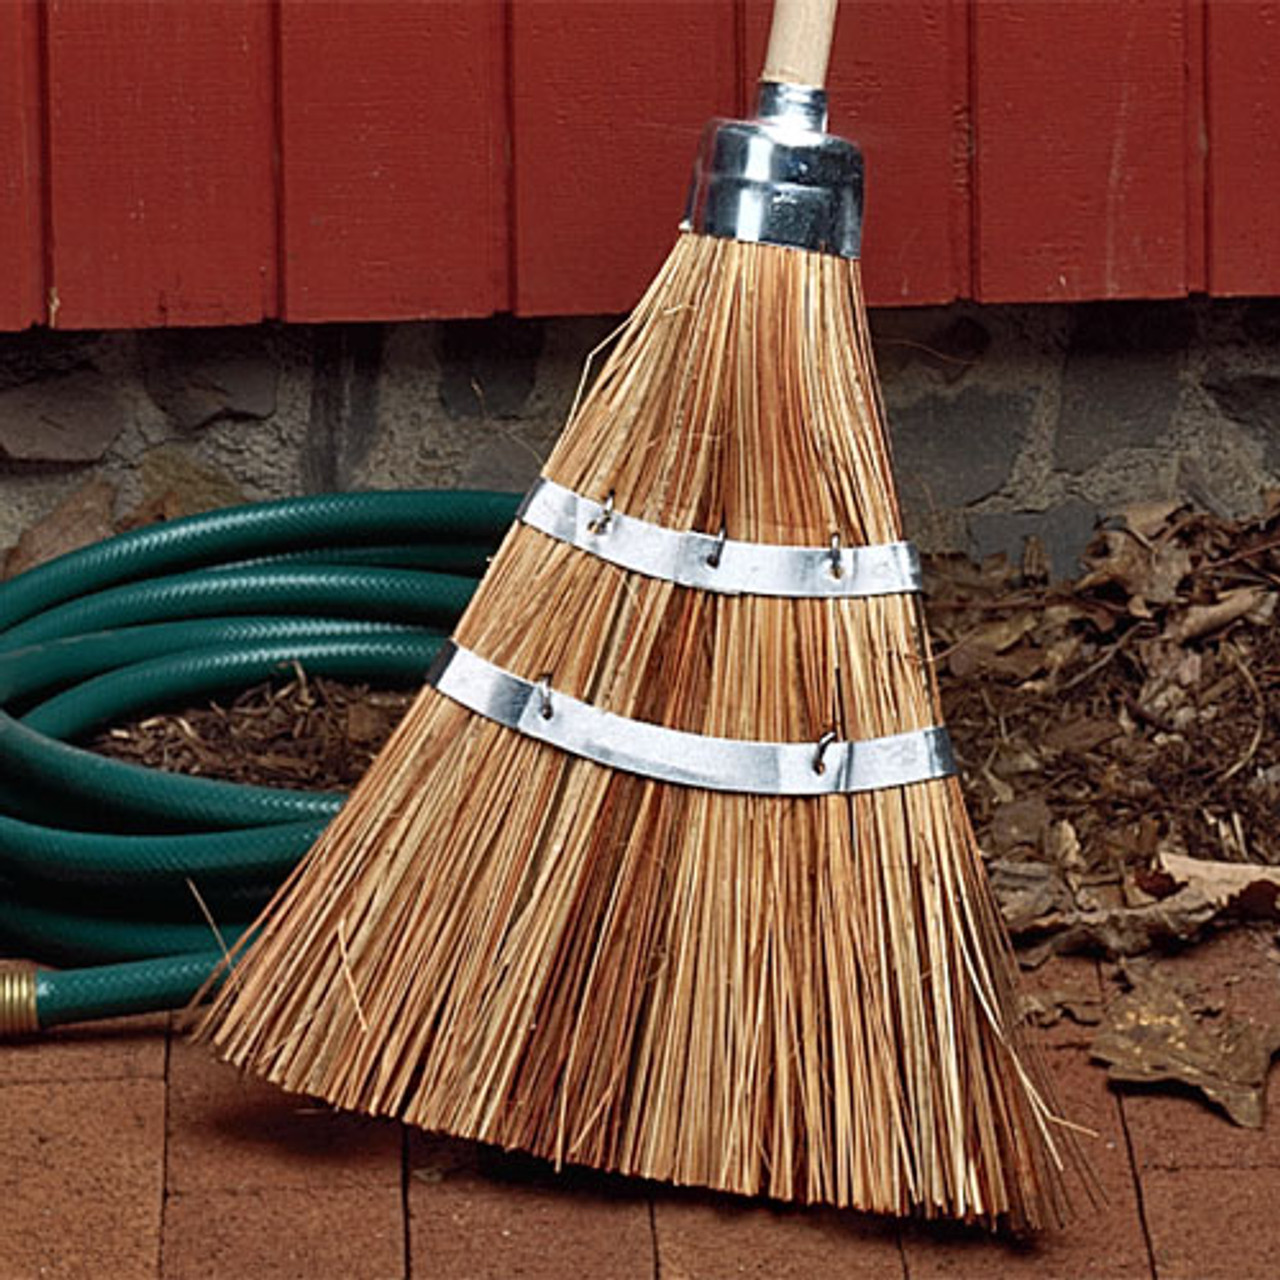 Blueberry Art For A Cause Durable Yard and Gardening Equipment From CuteTools! Landscaping Instrument Hand Painted Wooden Broomstick In The USA Sweep and Dust With This Garden Accessory Cute Tools Garden Broom